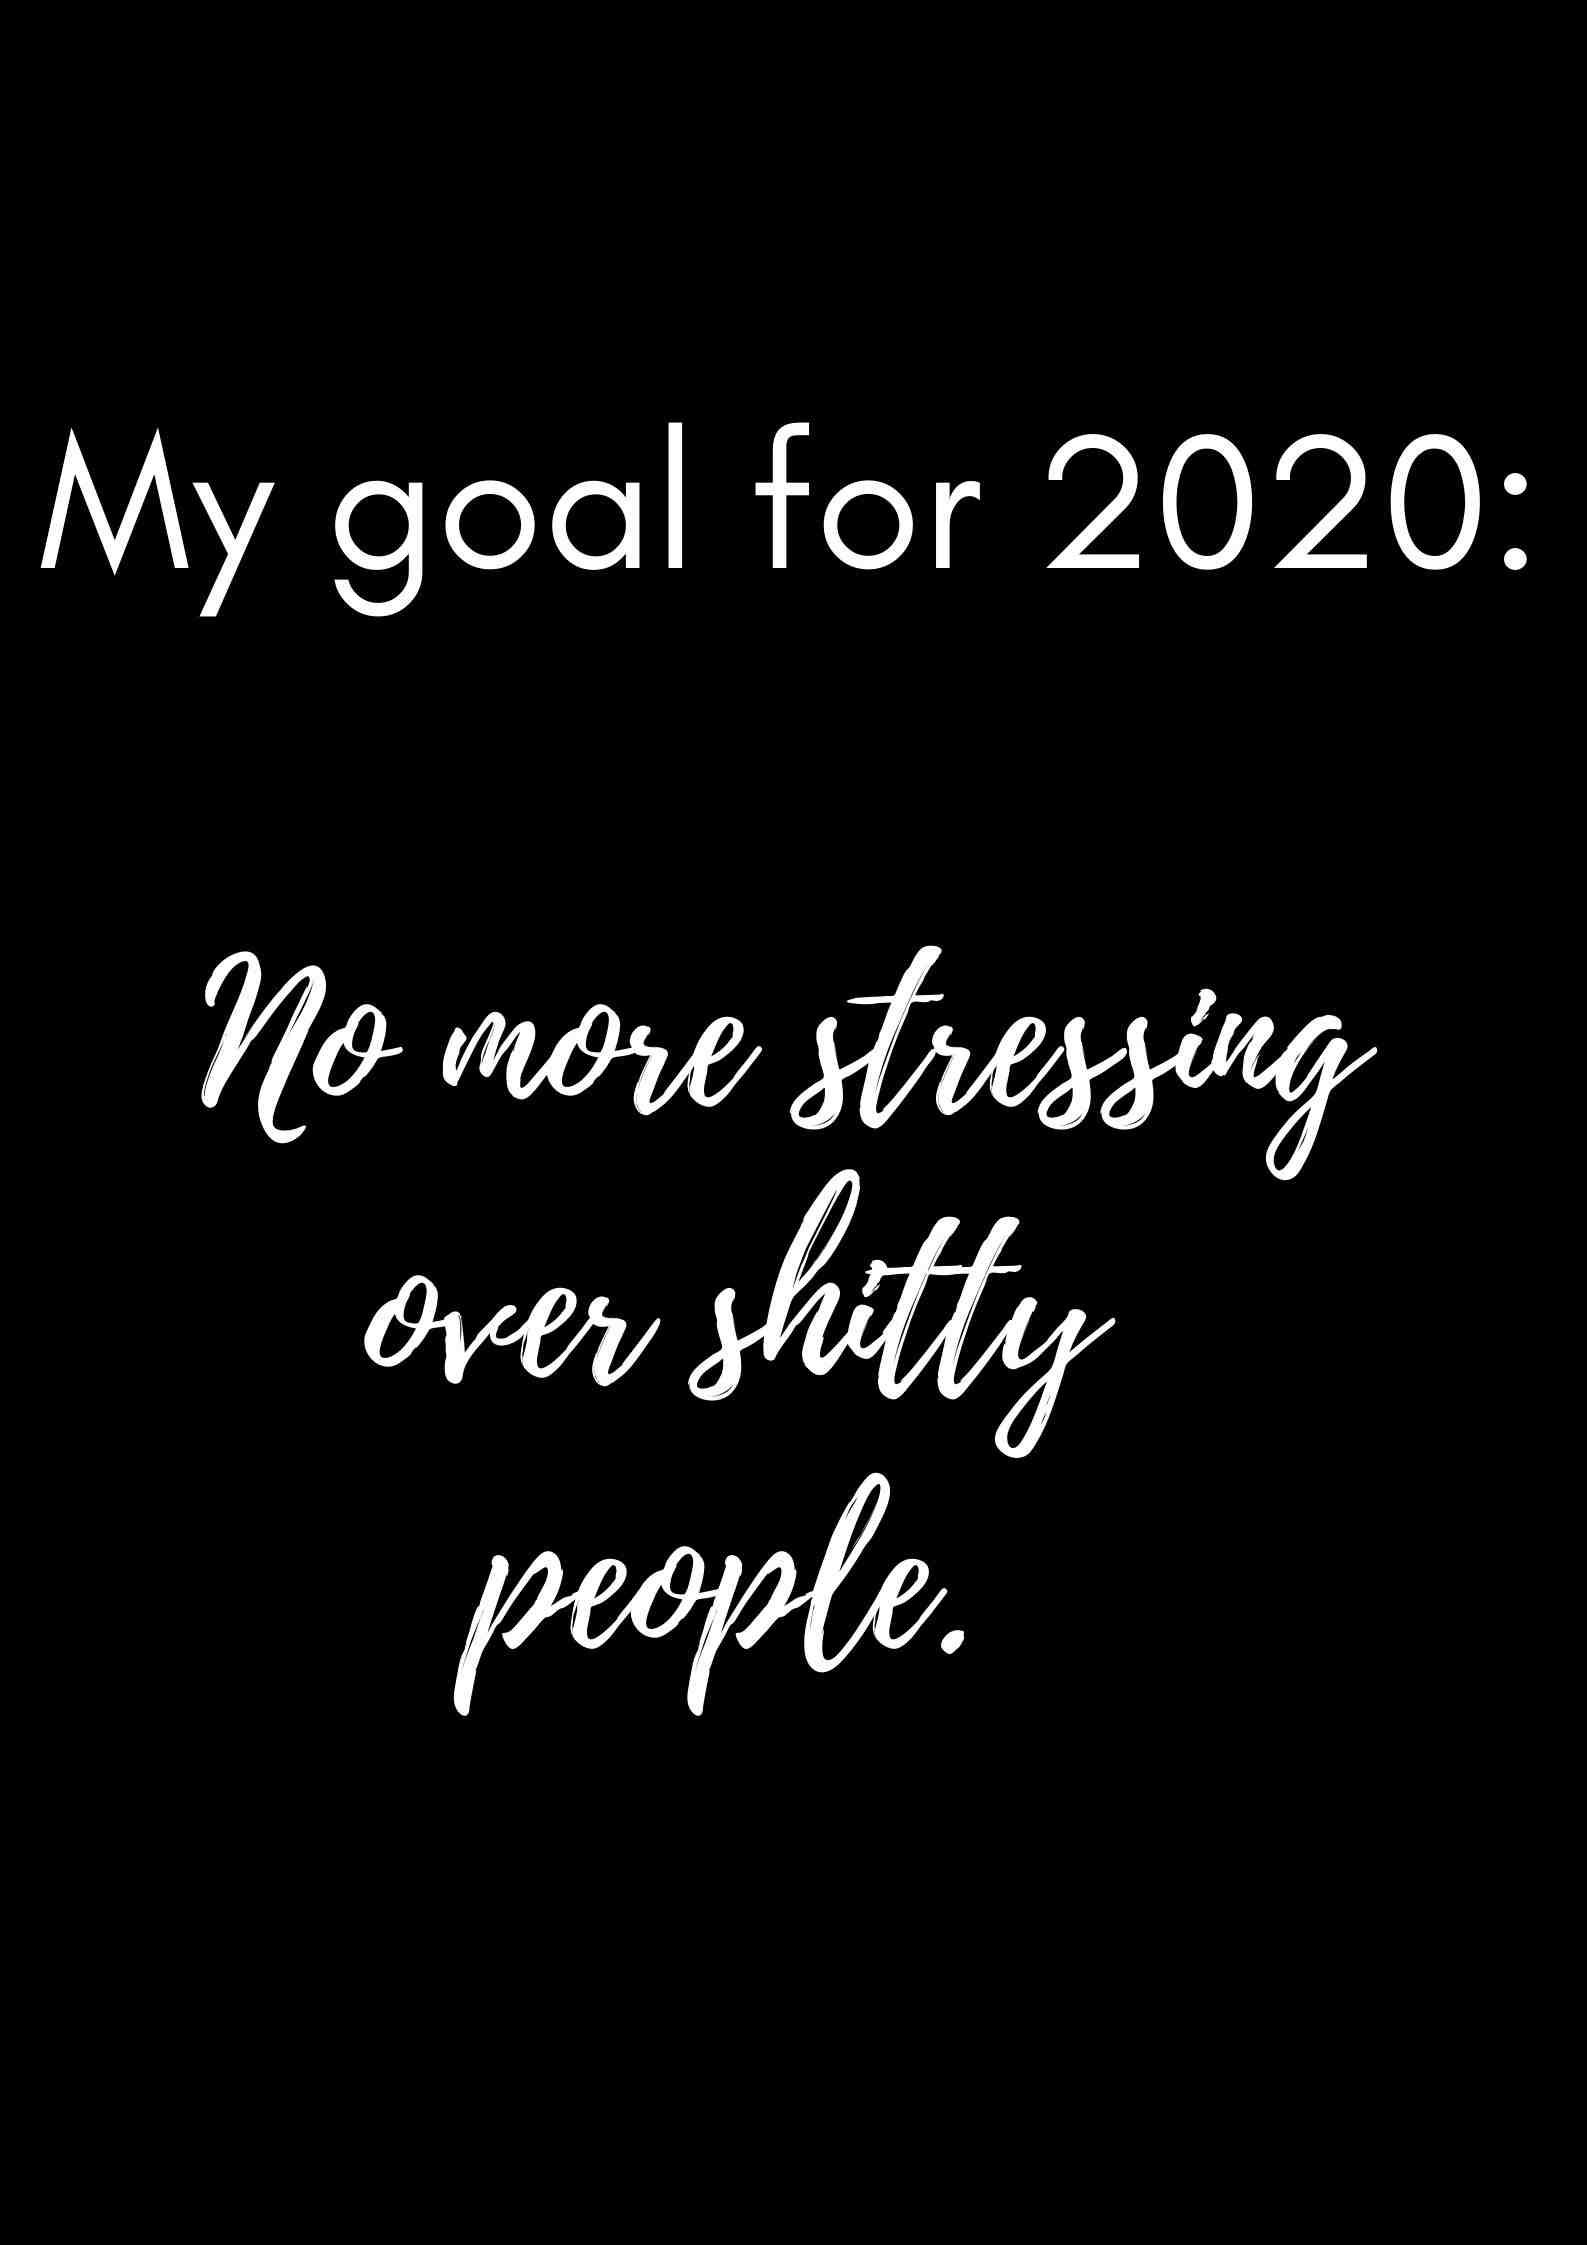 New Year Goals Pictures 2020 Quotes About New Year New Year Inspirational Quotes New Year Quotes Funny Hilarious